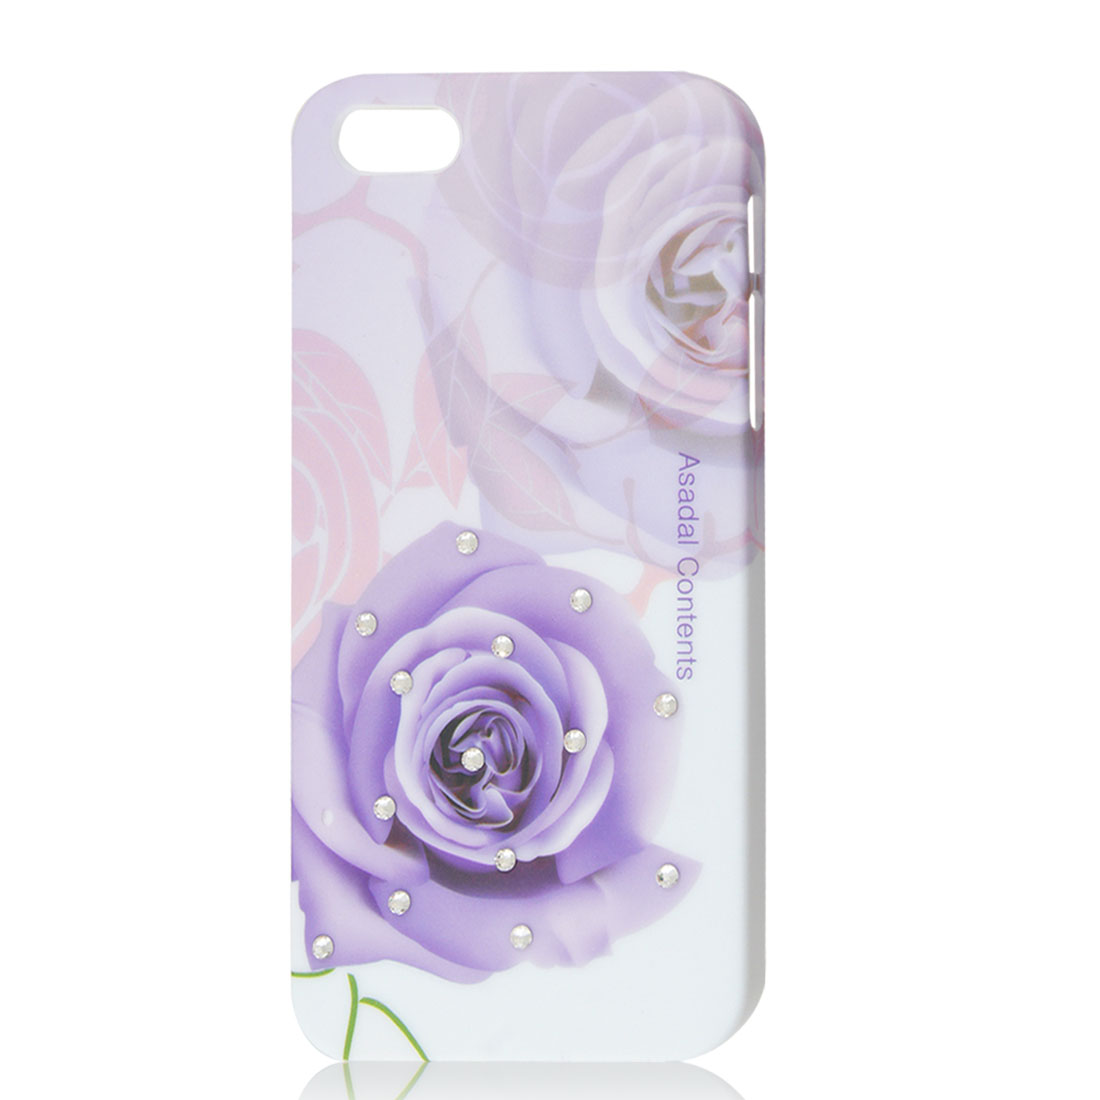 Light Purple Rose Glitter Bling Rhinestone Hard Back Case Cover for iPhone 5 5G